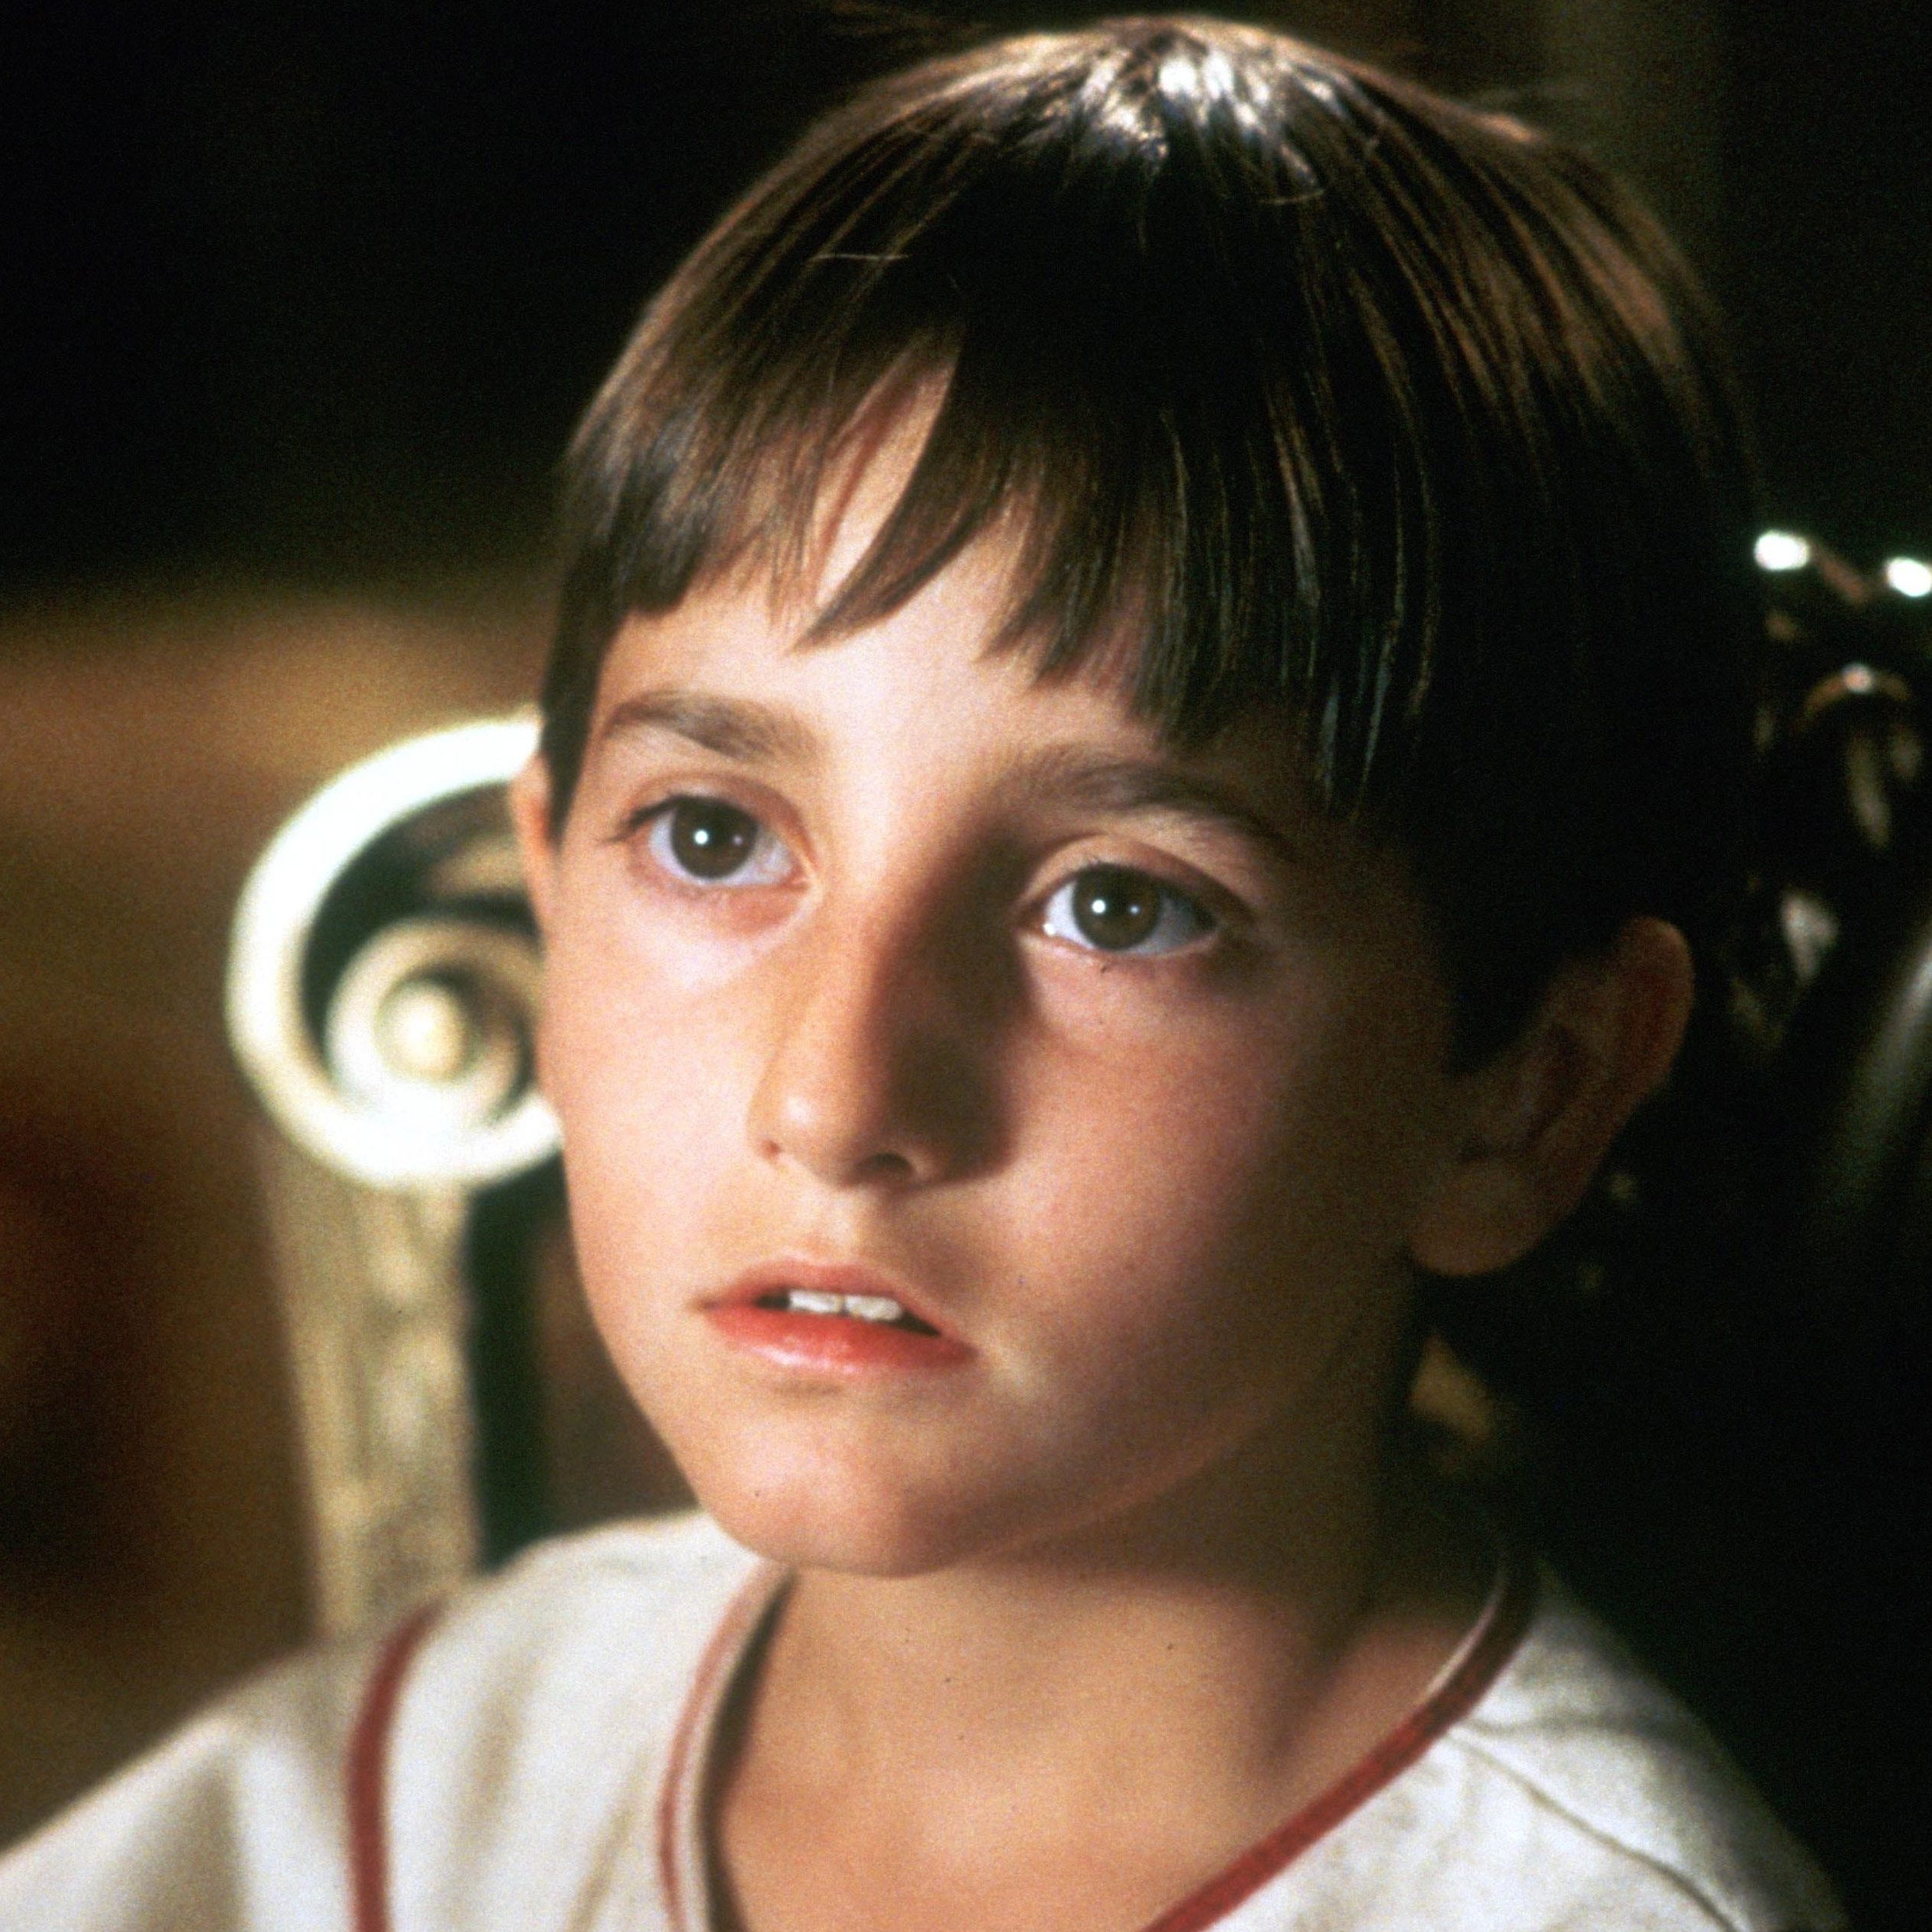 charlie korsmo the child star of hook and dick tracy is now a law professor 231268 scaled e1600354284523 20 Mad Facts About 1991's What About Bob?